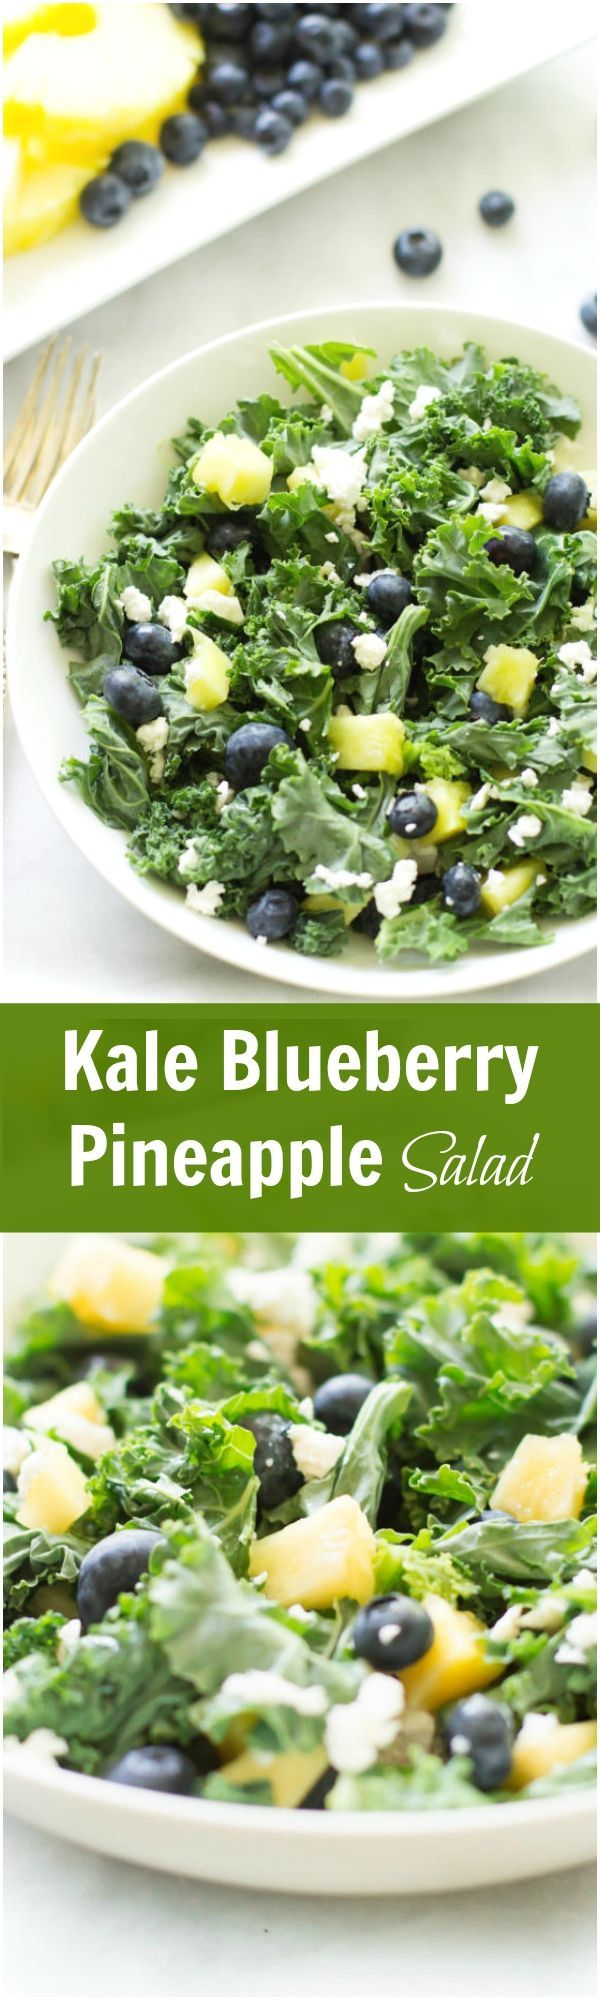 Kale Blueberry Pineapple Salad - Kale blueberry pineapple salad is sweet, tart, and full of vitamins.